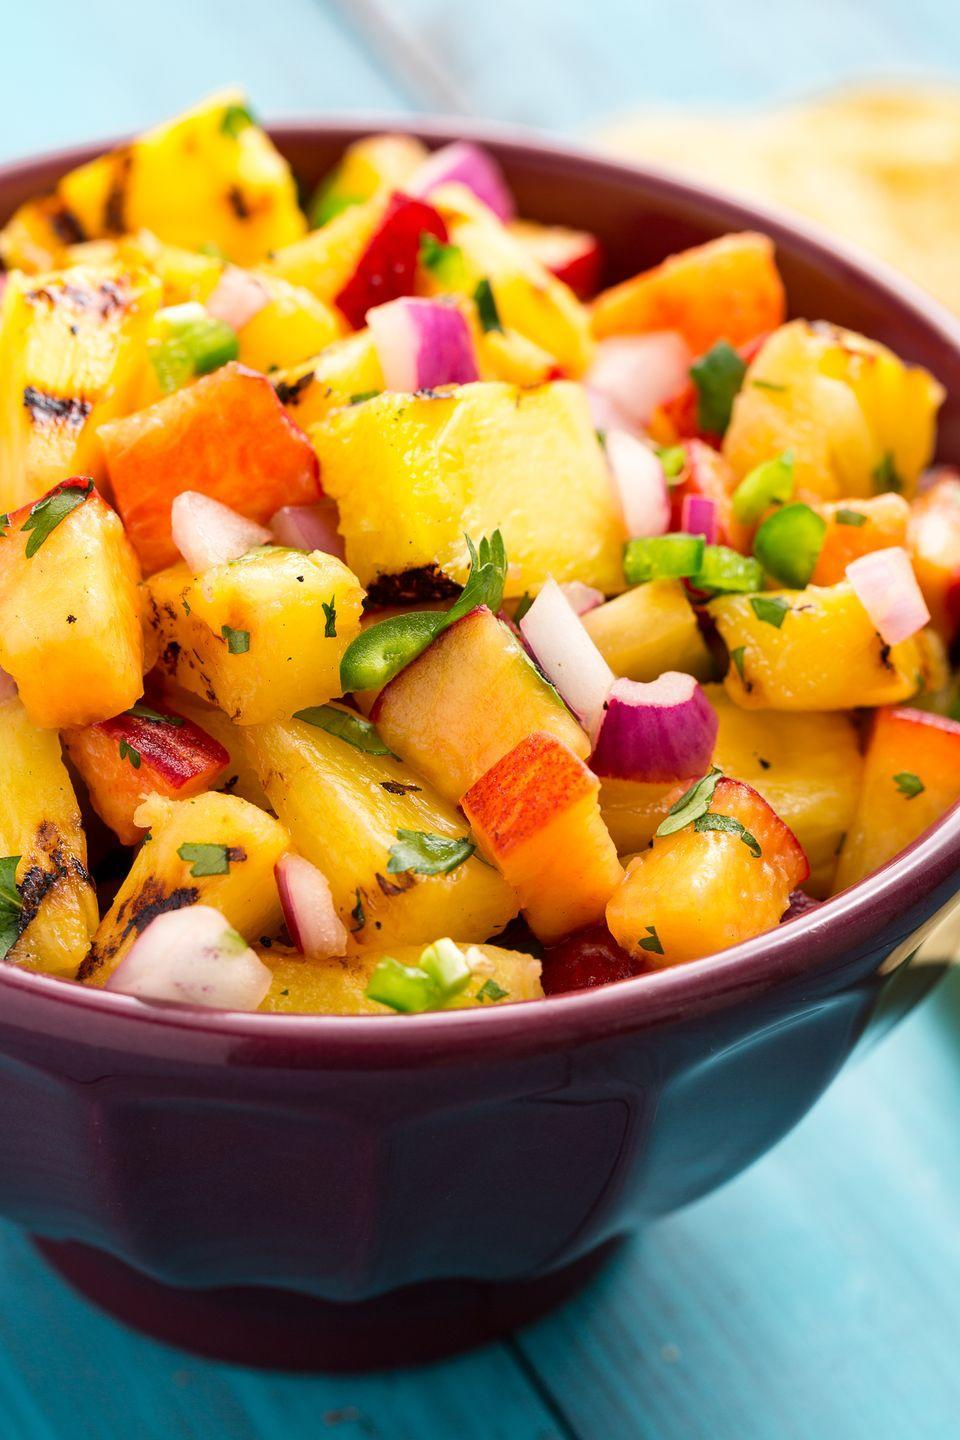 """<p>Pineapple salsa > all other salsas.</p><p>Get the recipe from <a href=""""https://www.delish.com/cooking/recipe-ideas/recipes/a47362/grilled-pineapple-salsa-recipe/"""" rel=""""nofollow noopener"""" target=""""_blank"""" data-ylk=""""slk:Delish"""" class=""""link rapid-noclick-resp"""">Delish</a>.<br></p>"""